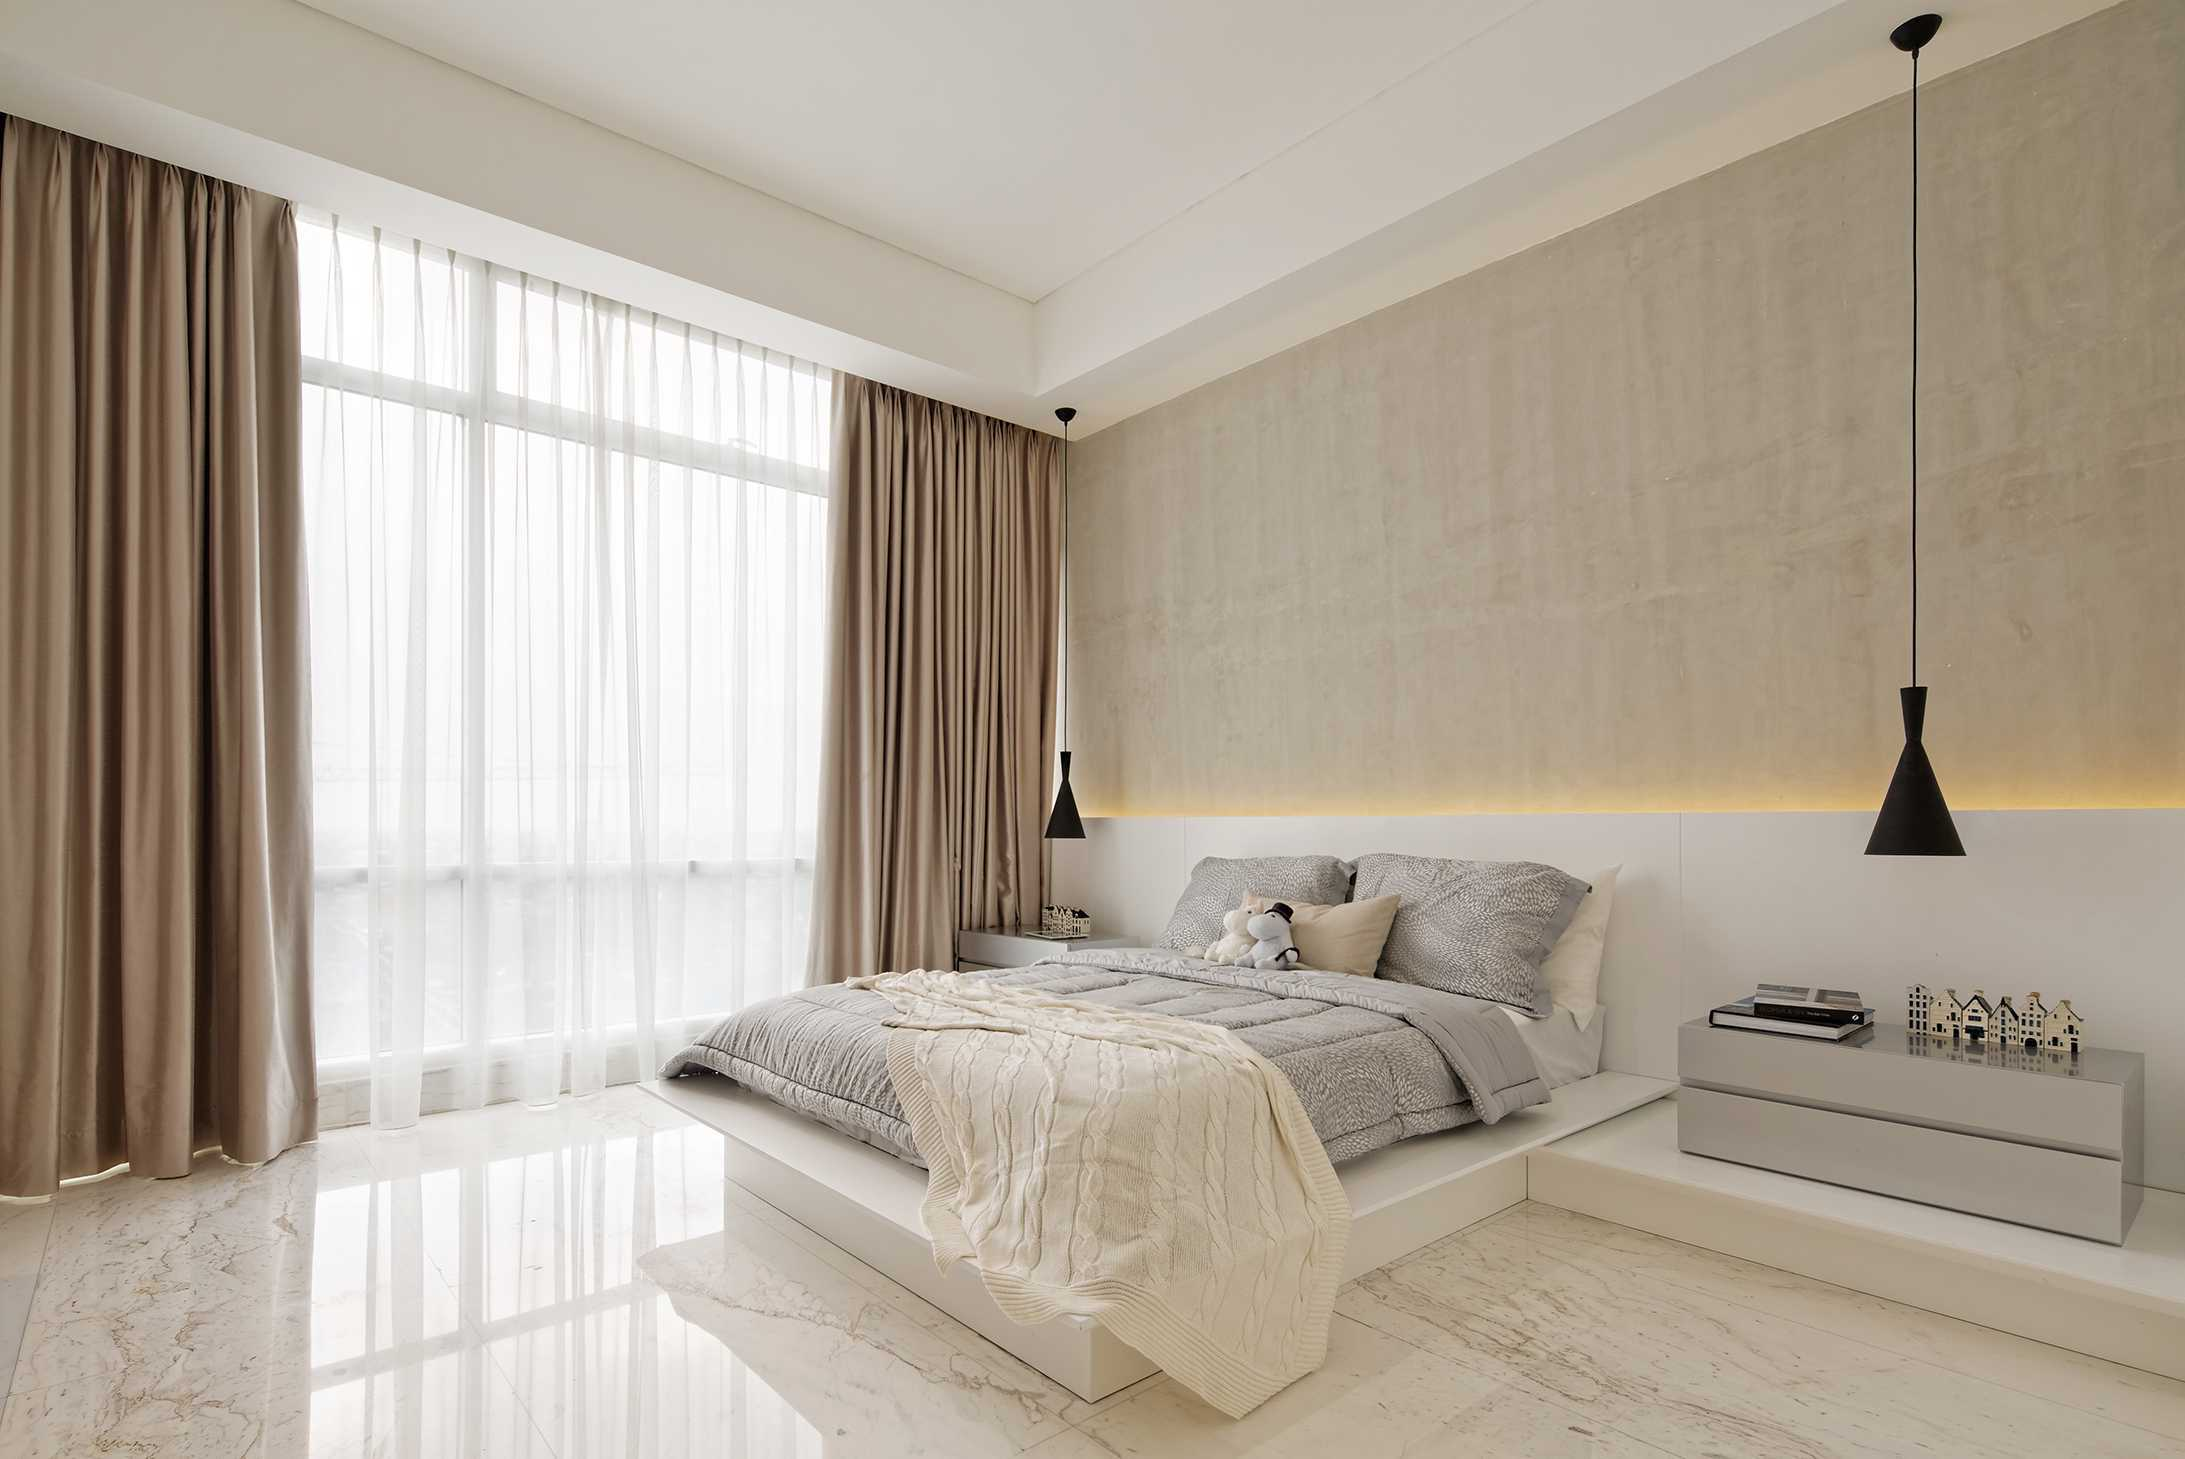 Sontani Partners 11A Residence South Jakarta, Indonesia South Jakarta, Indonesia Bedroom Contemporary,modern,tropical,scandinavian,kontemporer,industrial,wood  21399